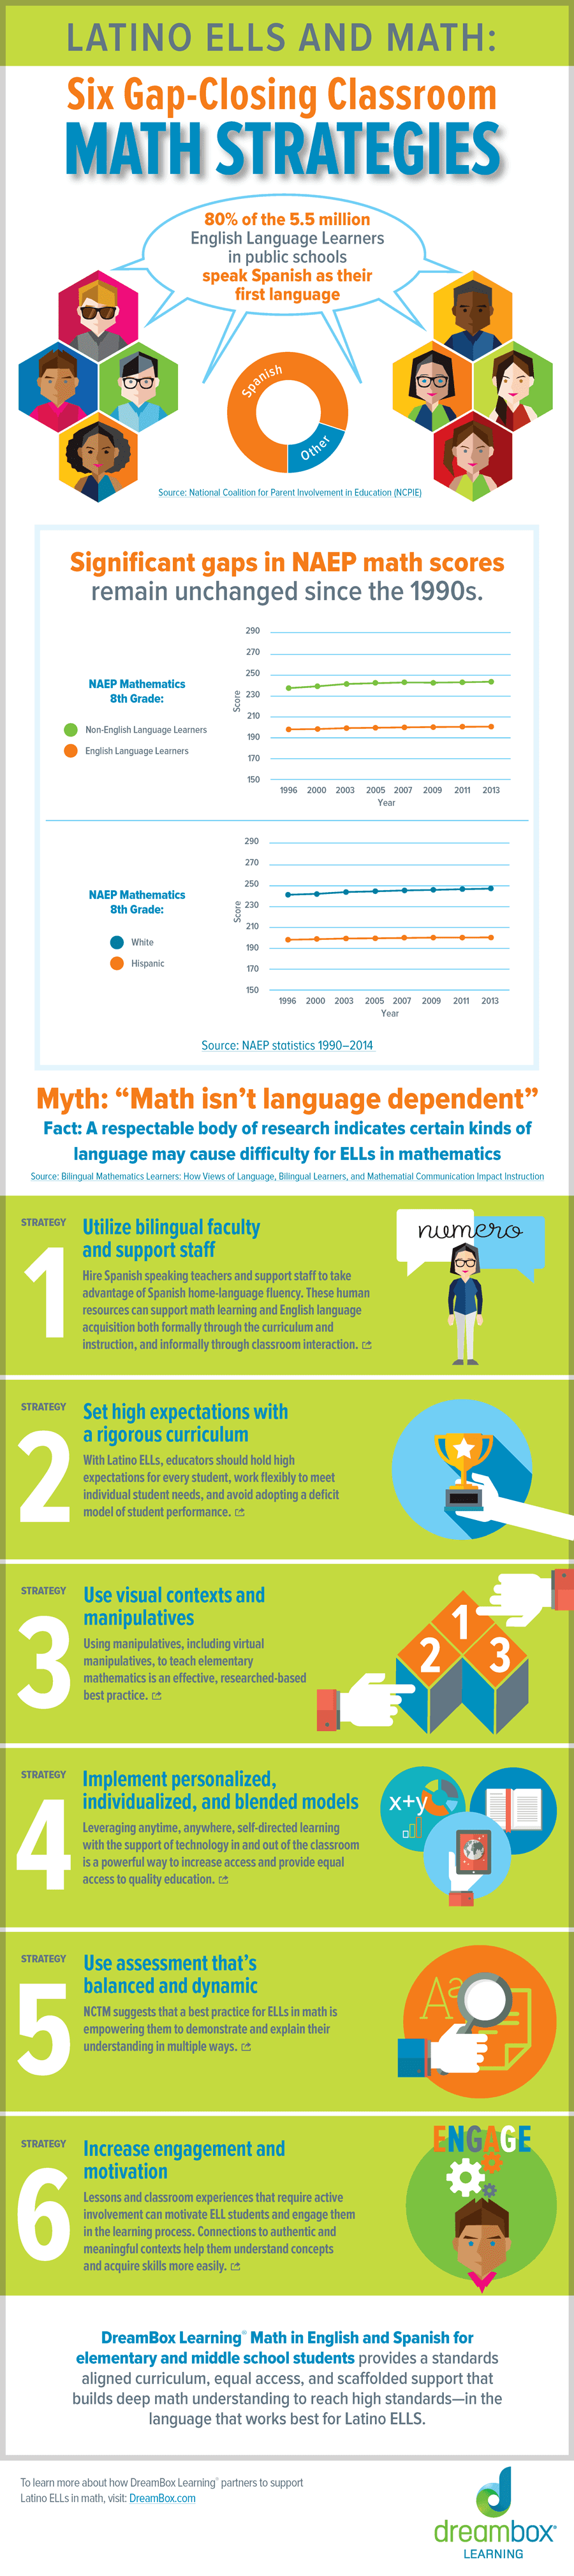 Six Gap-Closing Classroom Math Strategies Infographic